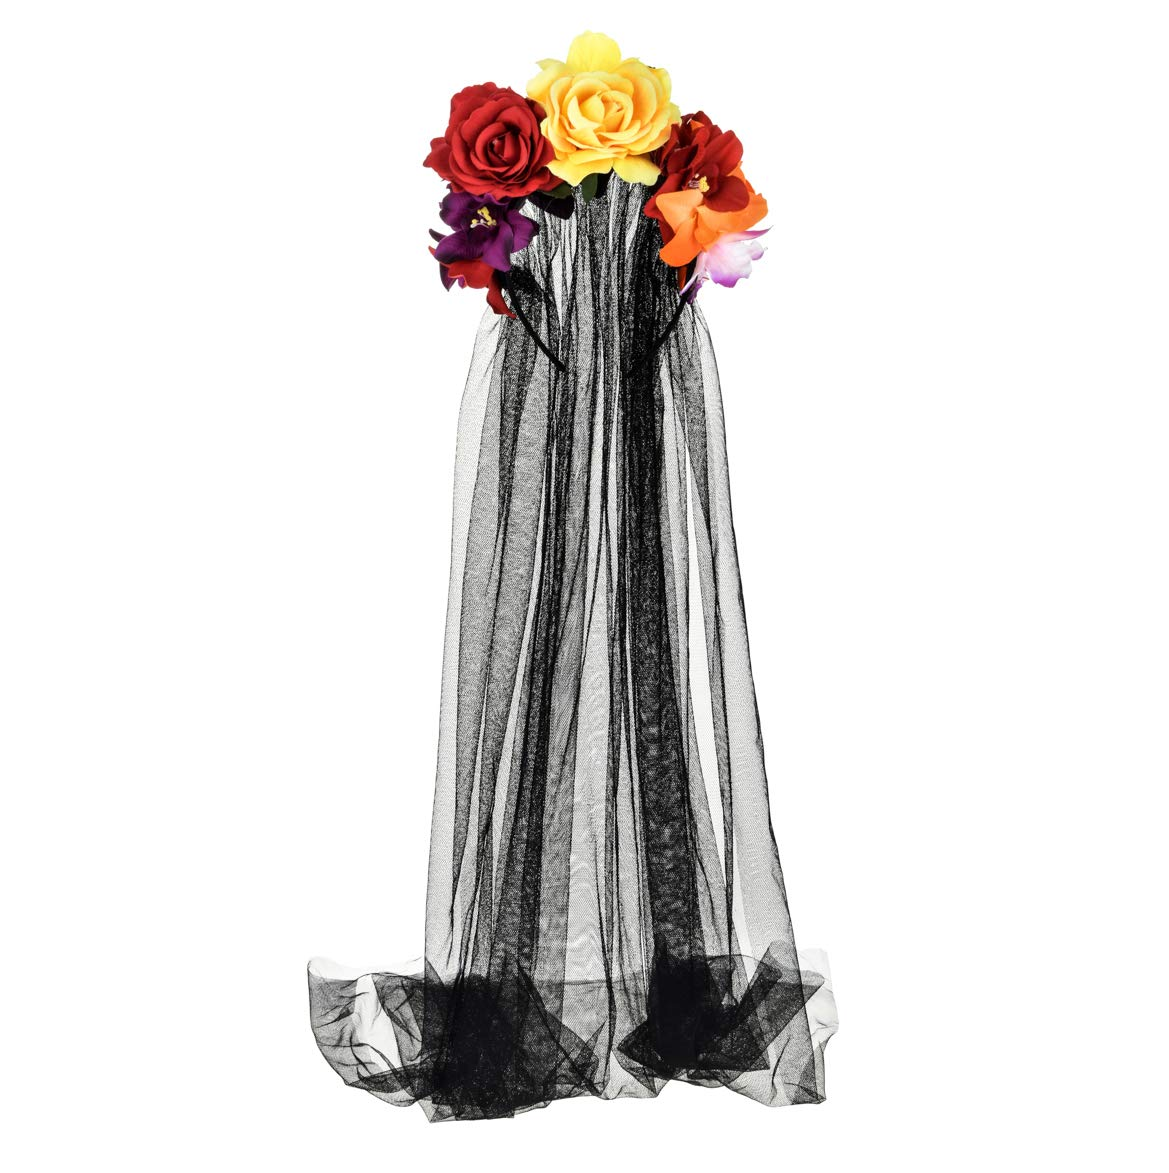 Funsveta Day of the Dead Headpiece Rose Floral Crown Lace Veil Halloween Costume Dress Up Accessory (Red and Yellow Rose Lily Flower)